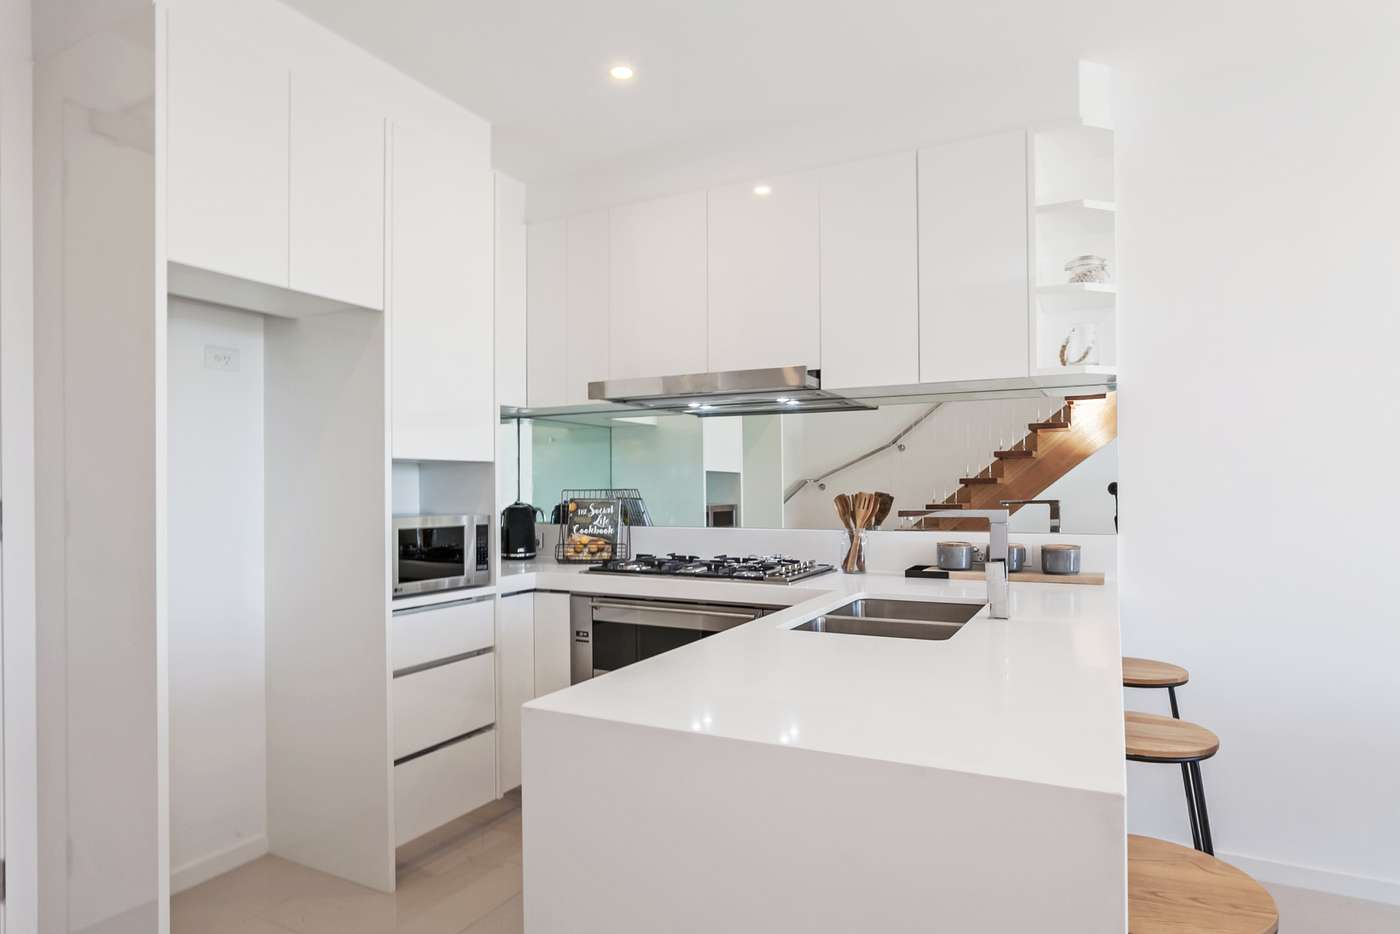 Main view of Homely apartment listing, 402/85 Hutton Street, Thornbury VIC 3071